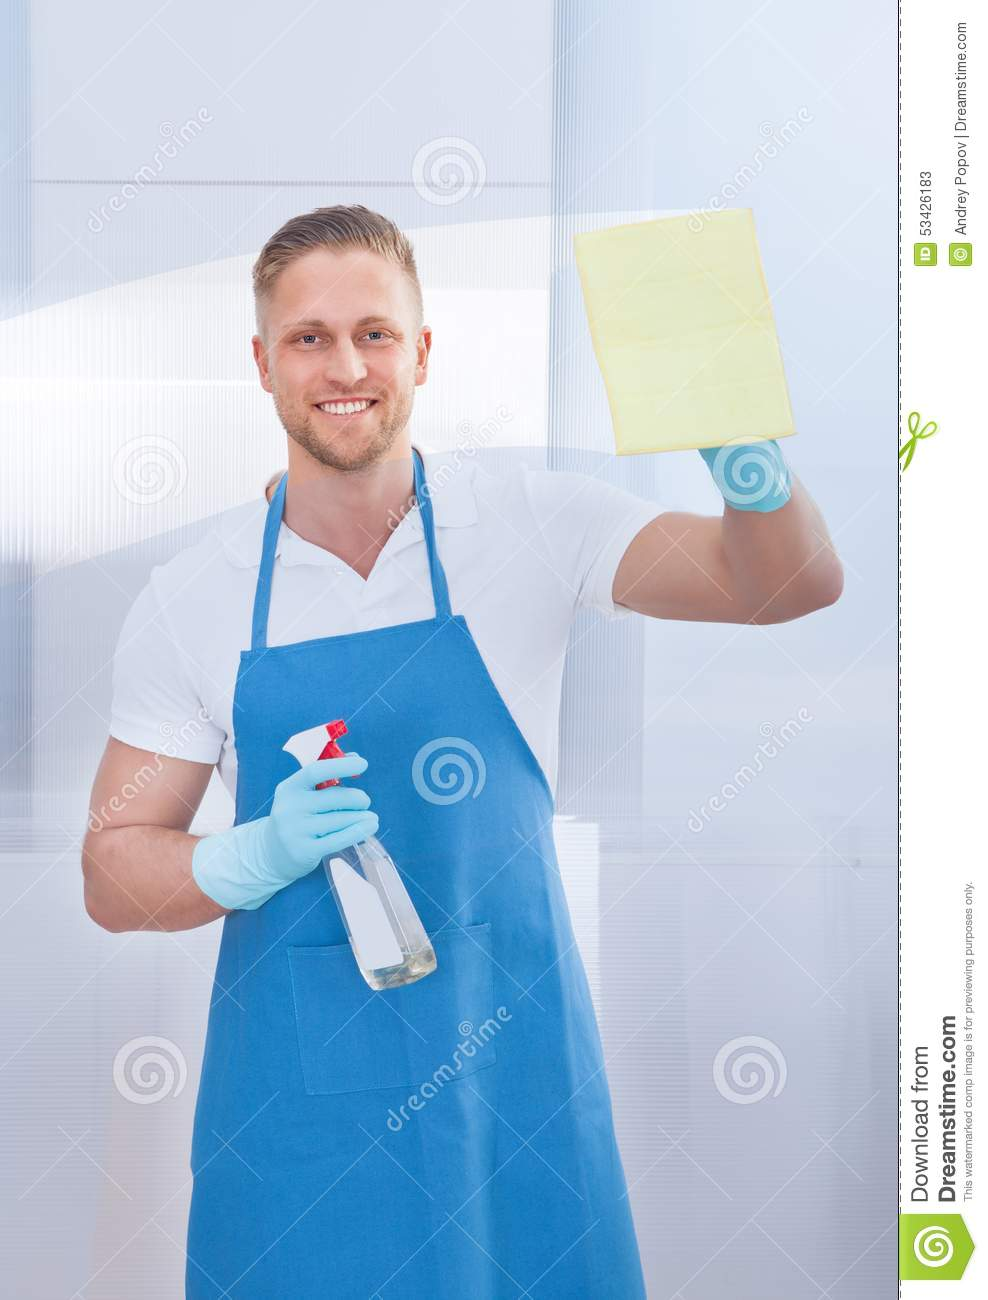 Cleaner Cleaning A Pane Of Glass Stock Photo Image 53426183